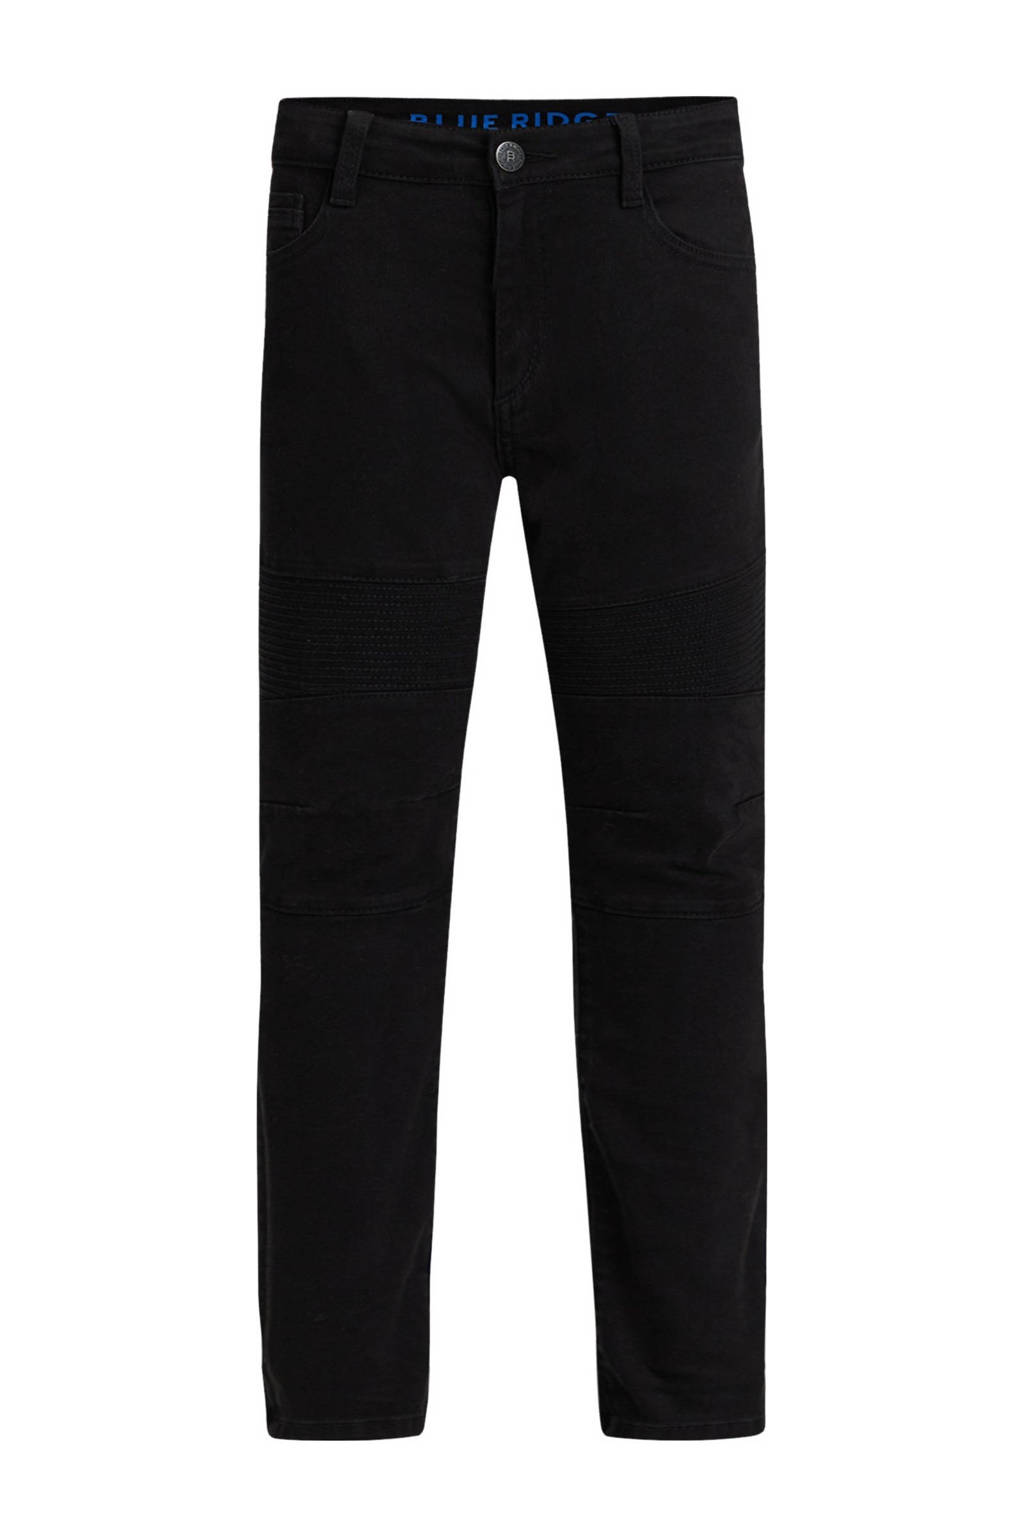 WE Fashion Blue Ridge skinny jeans zwart, Zwart